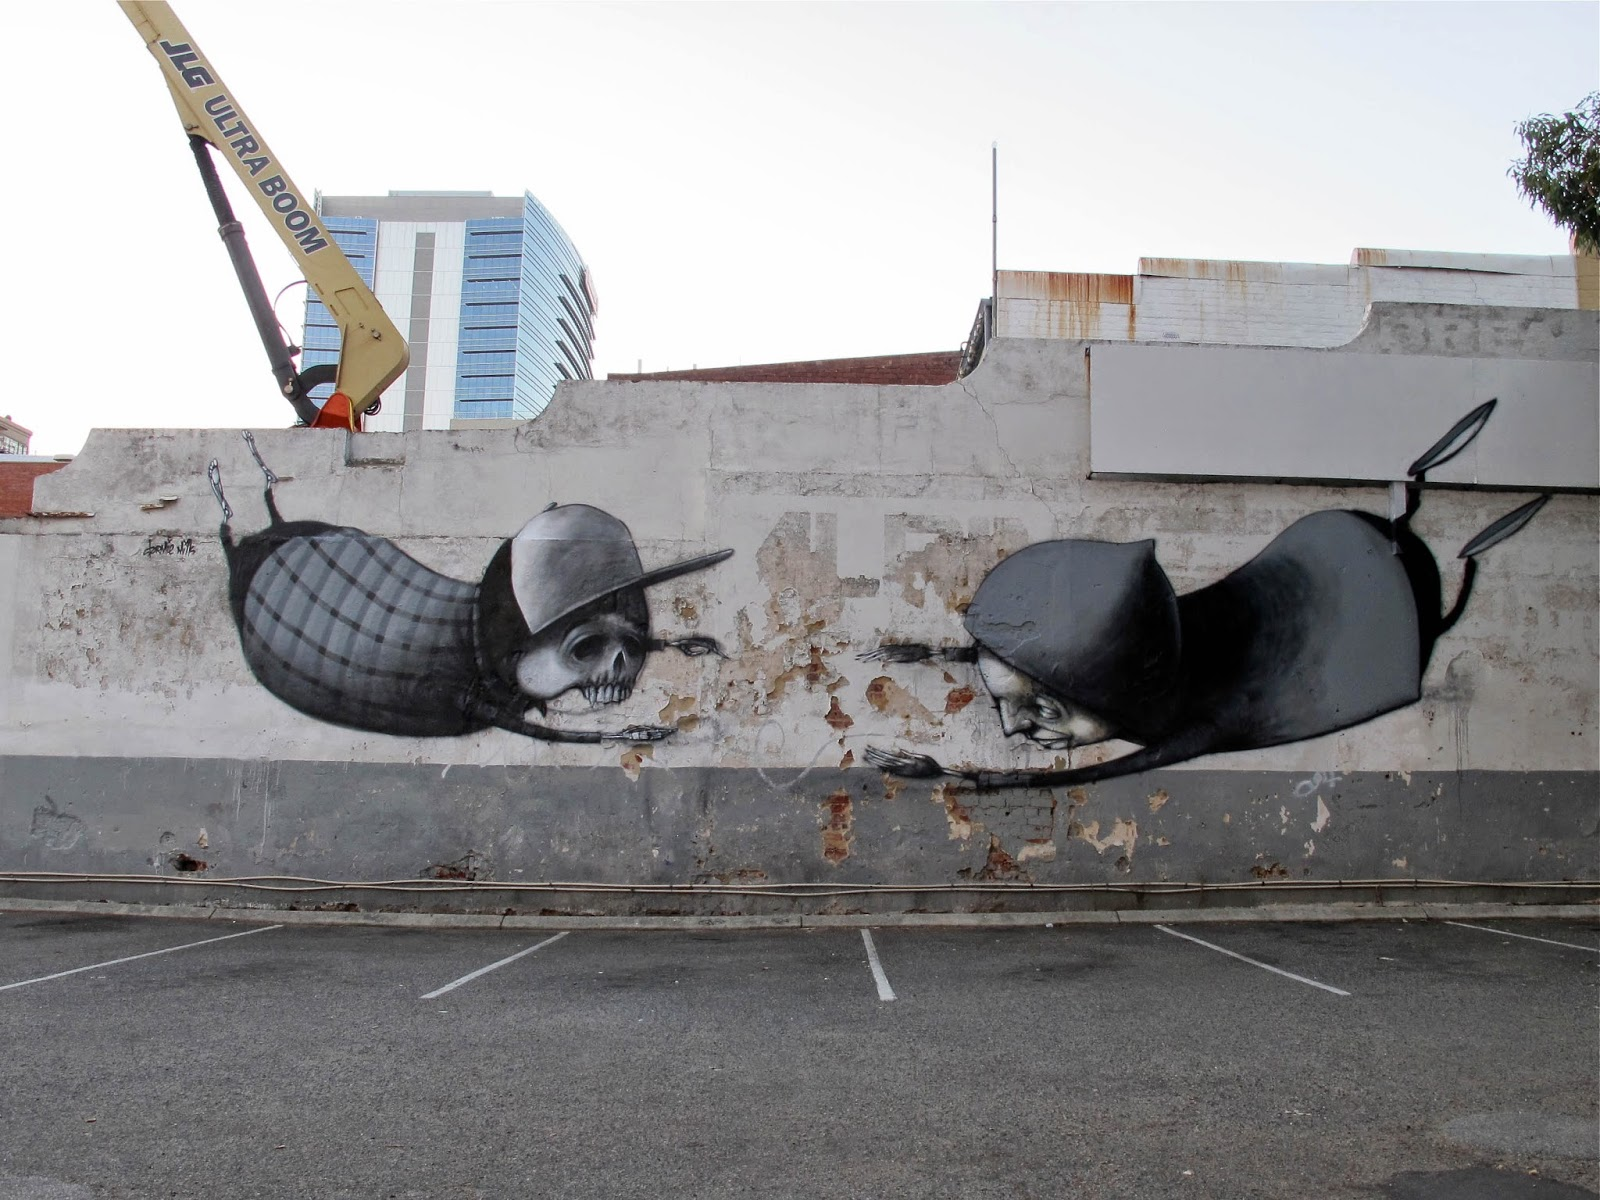 Stormie Mills was also part of the Public Forms Street Art Festival in Perth, Australia where he was invited to paint a big wall.